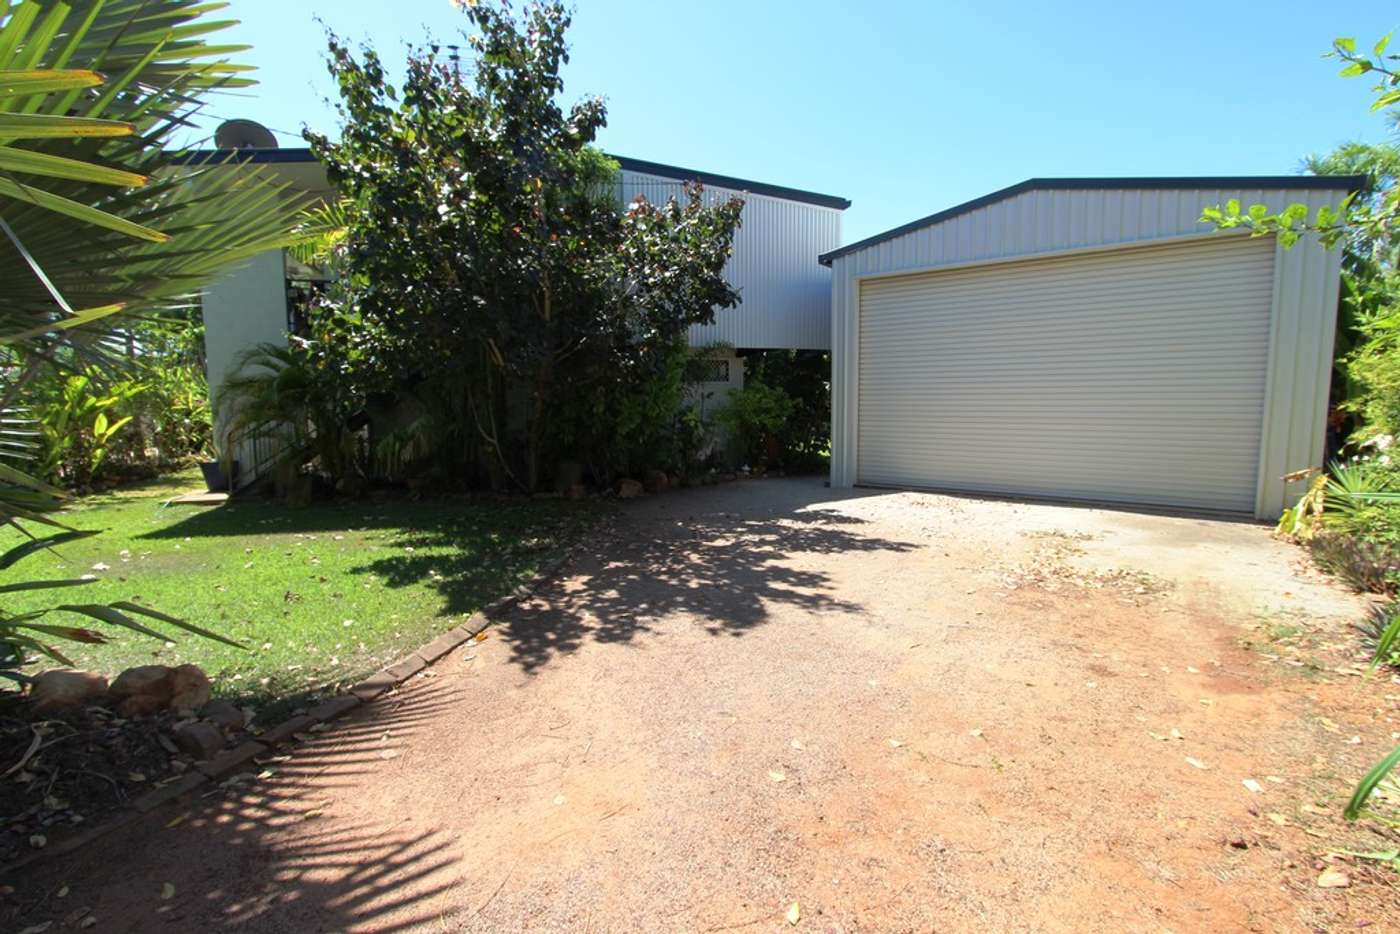 Main view of Homely house listing, 24 Elliott Street, Katherine NT 850